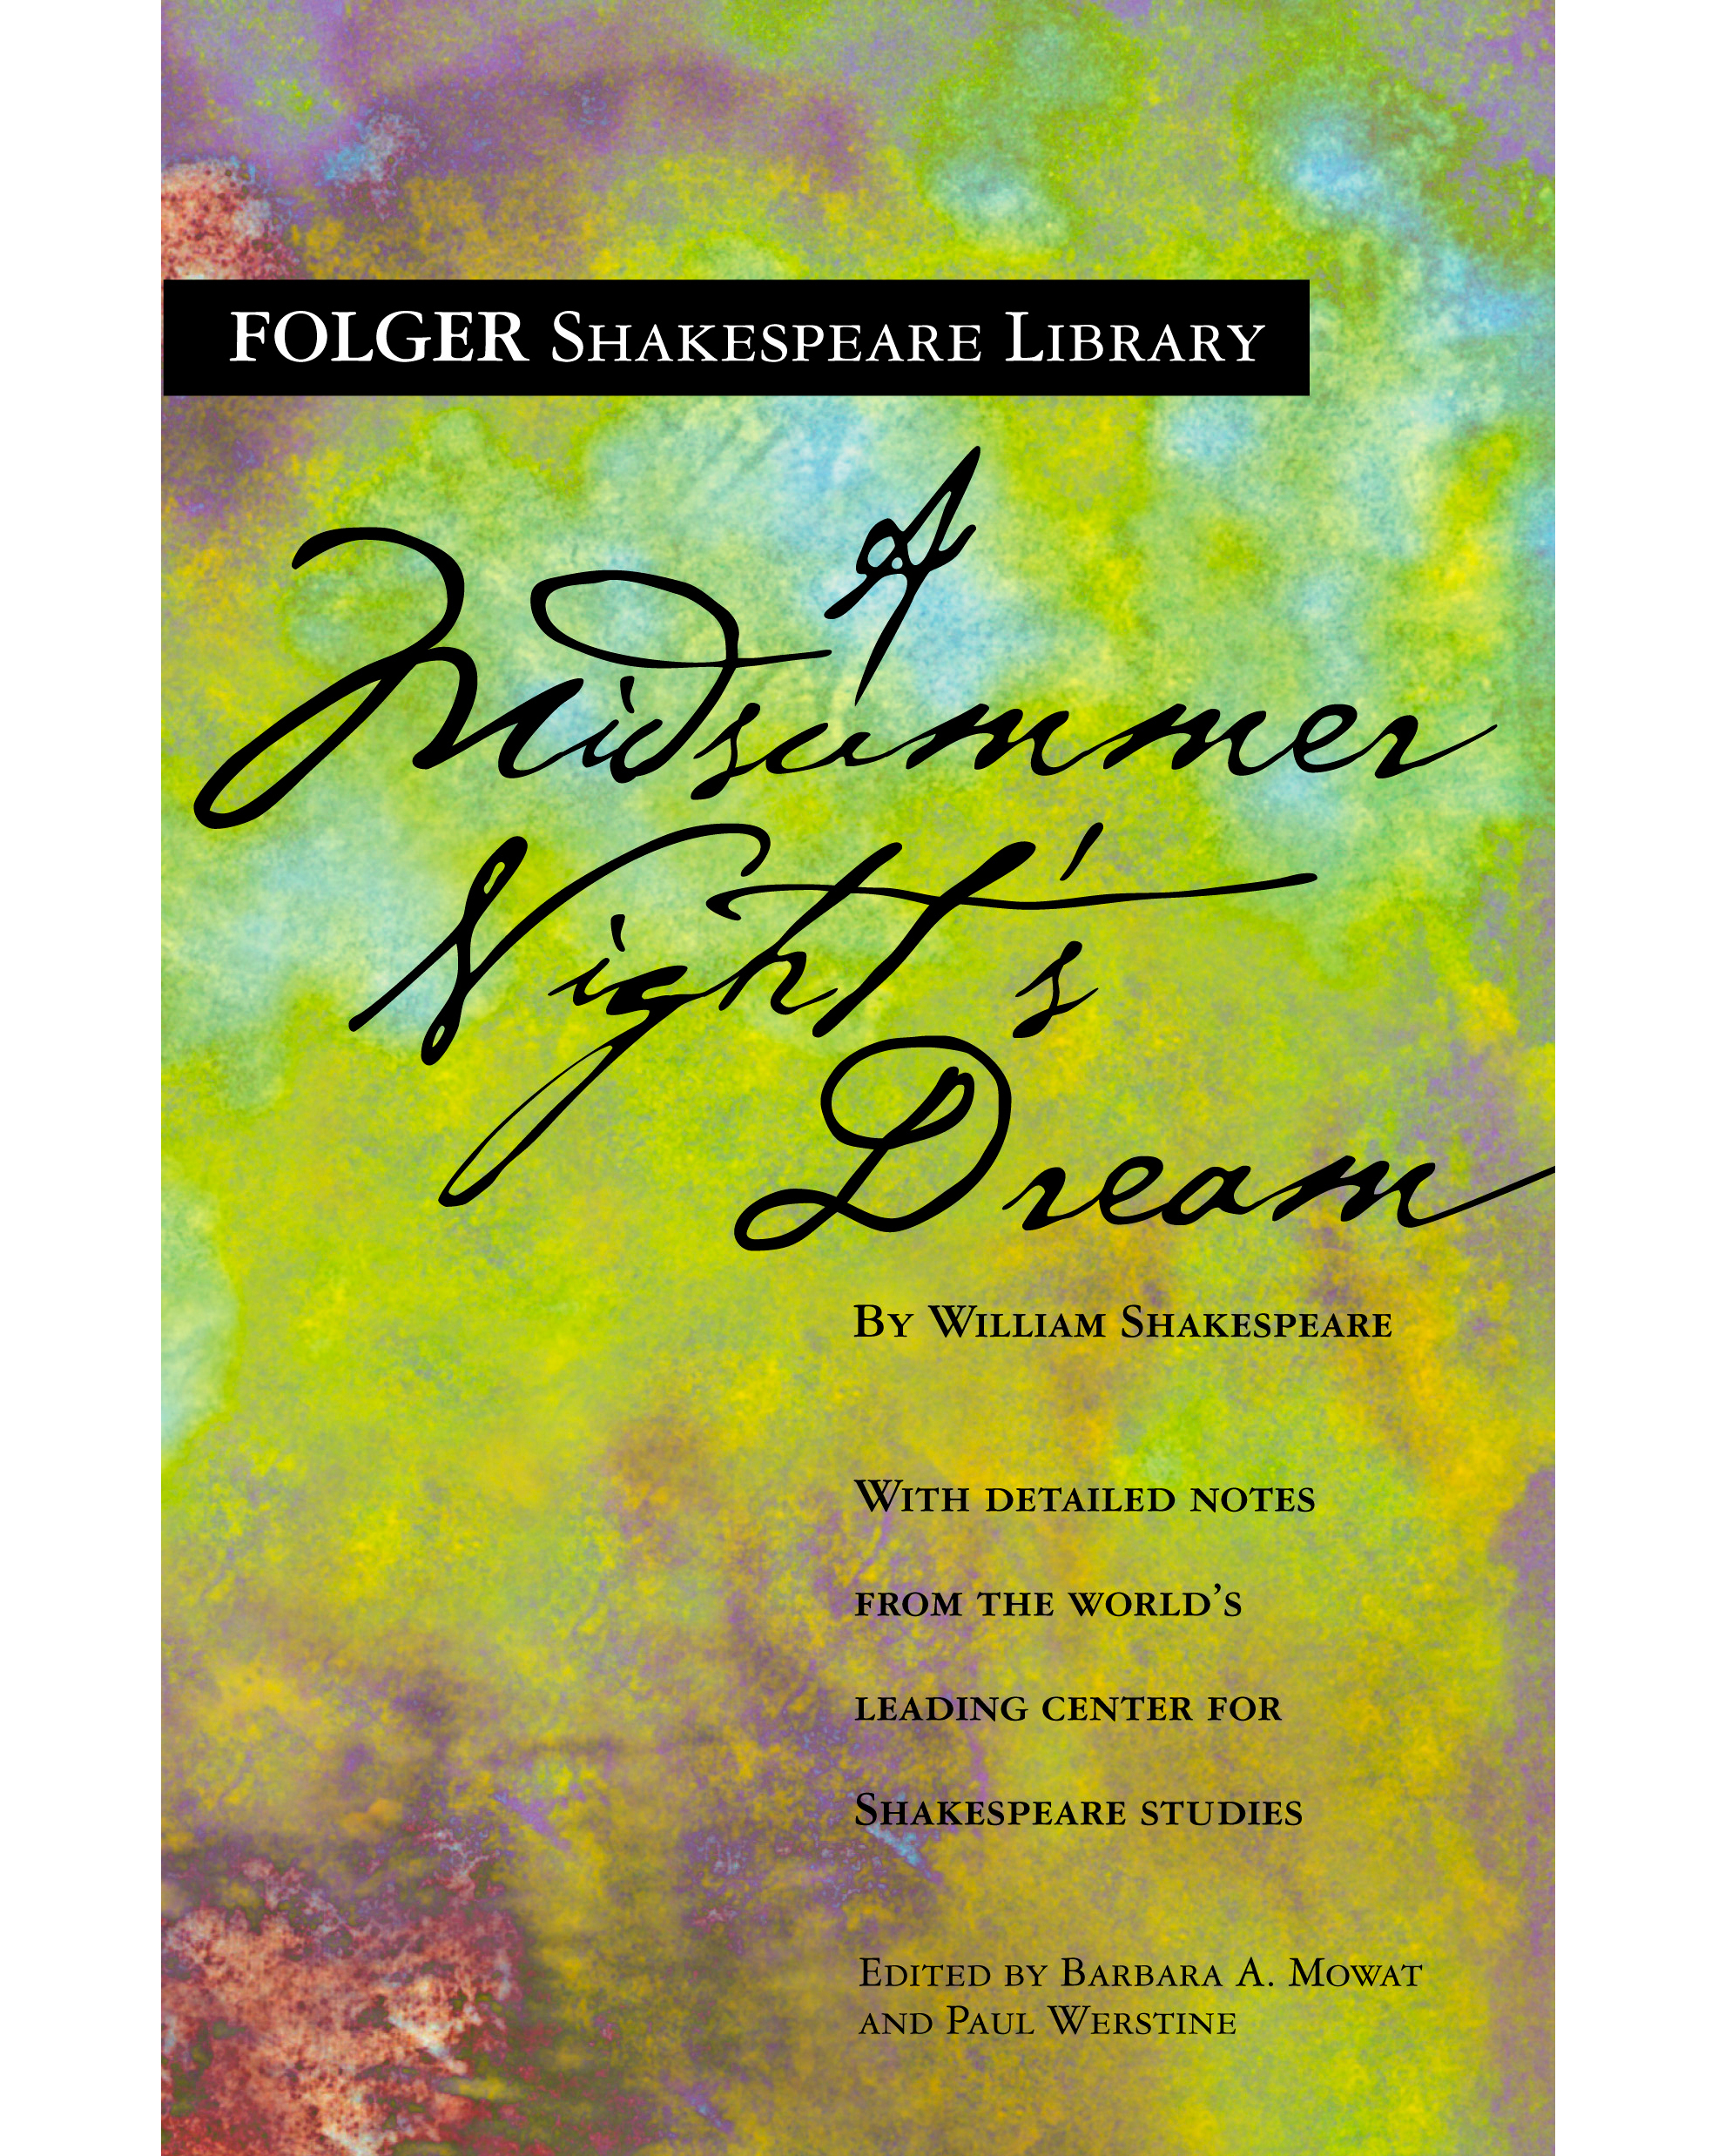 books-read-before-marriage-midsummer-nights-dream-shakespeare-0115.jpg